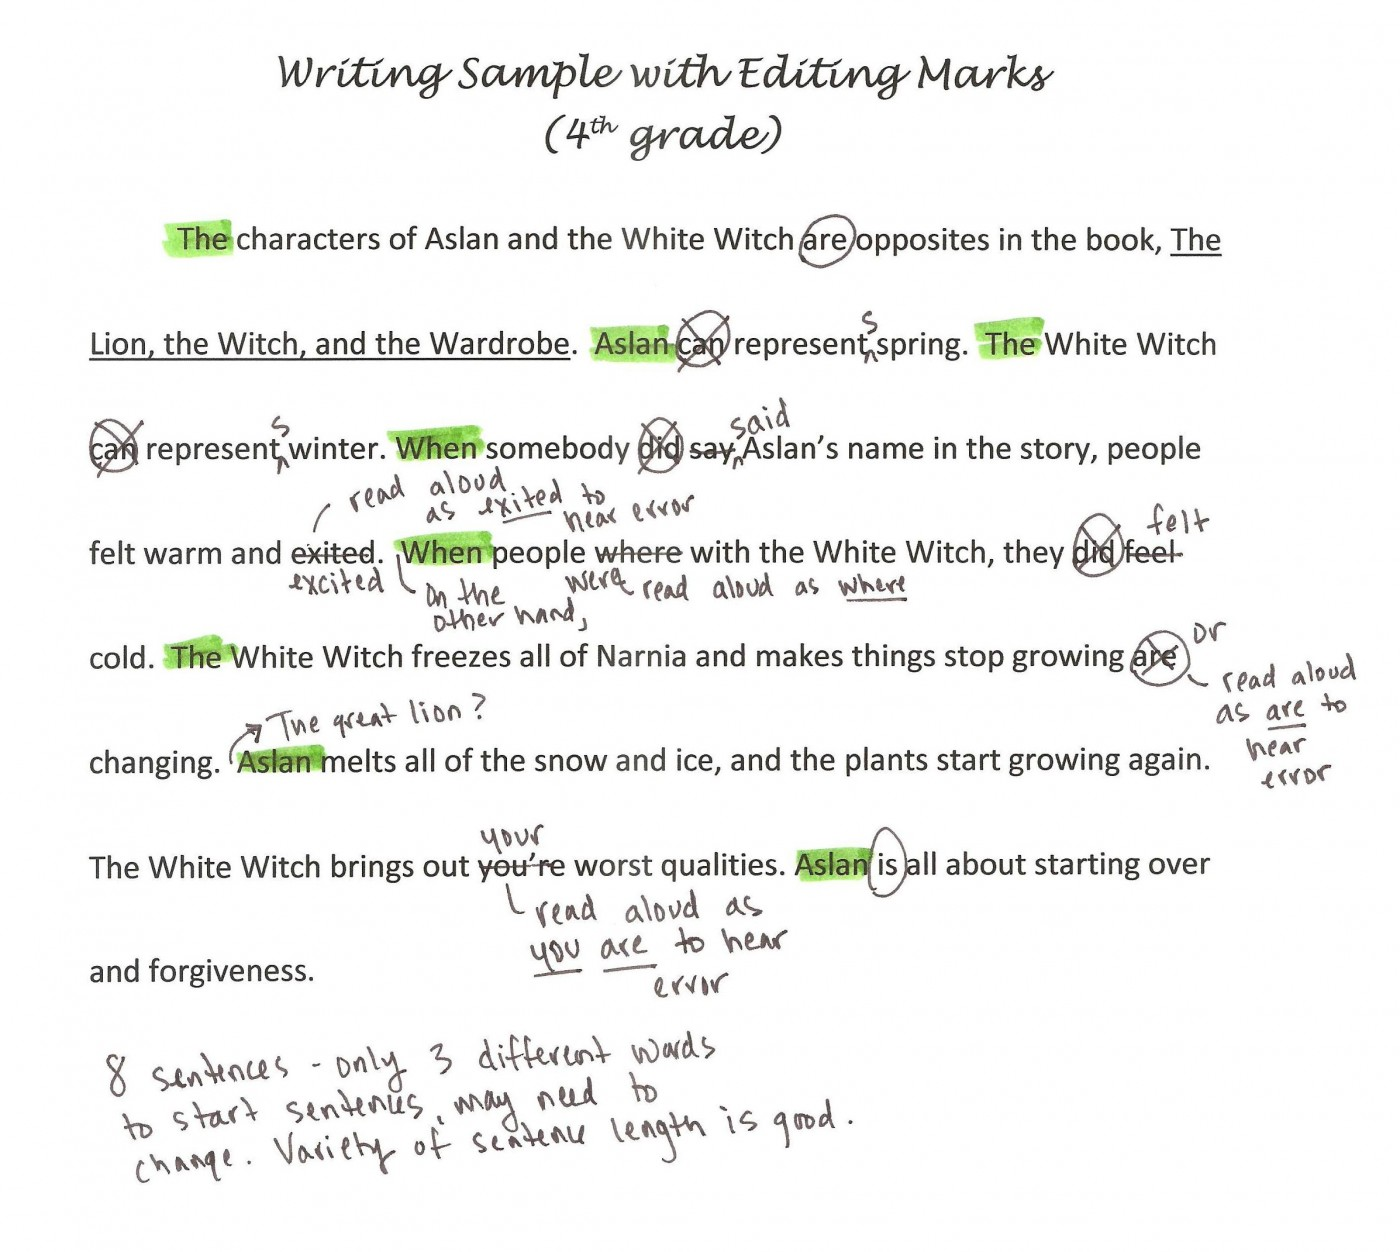 003 Essay Editor Writing Sample With Editing Marks1 Marvelous Free Service Corrector Generator Job 1400